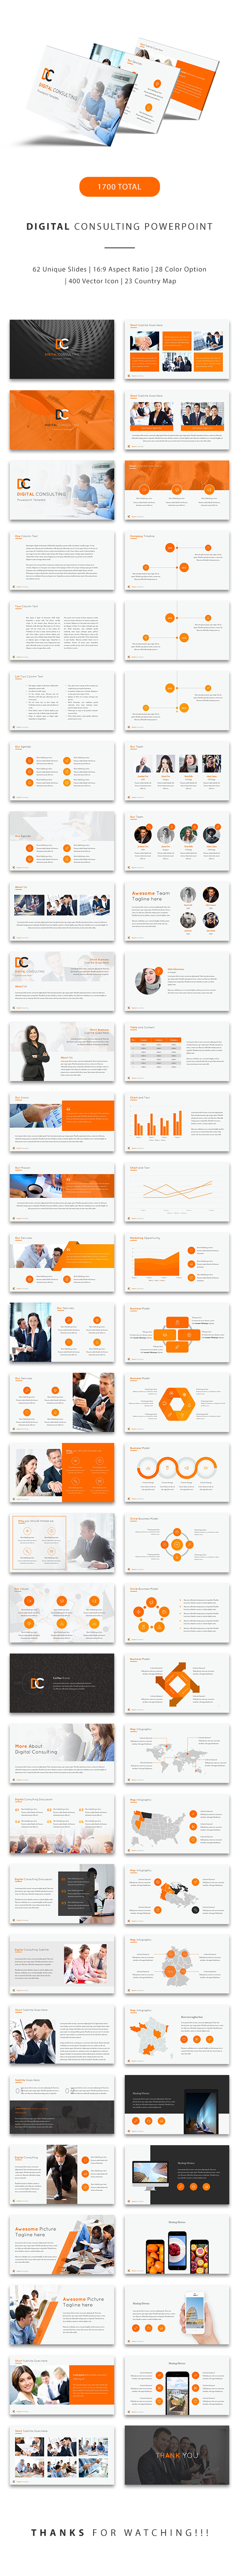 Digital Consulting Powerpoint - Finance PowerPoint Templates